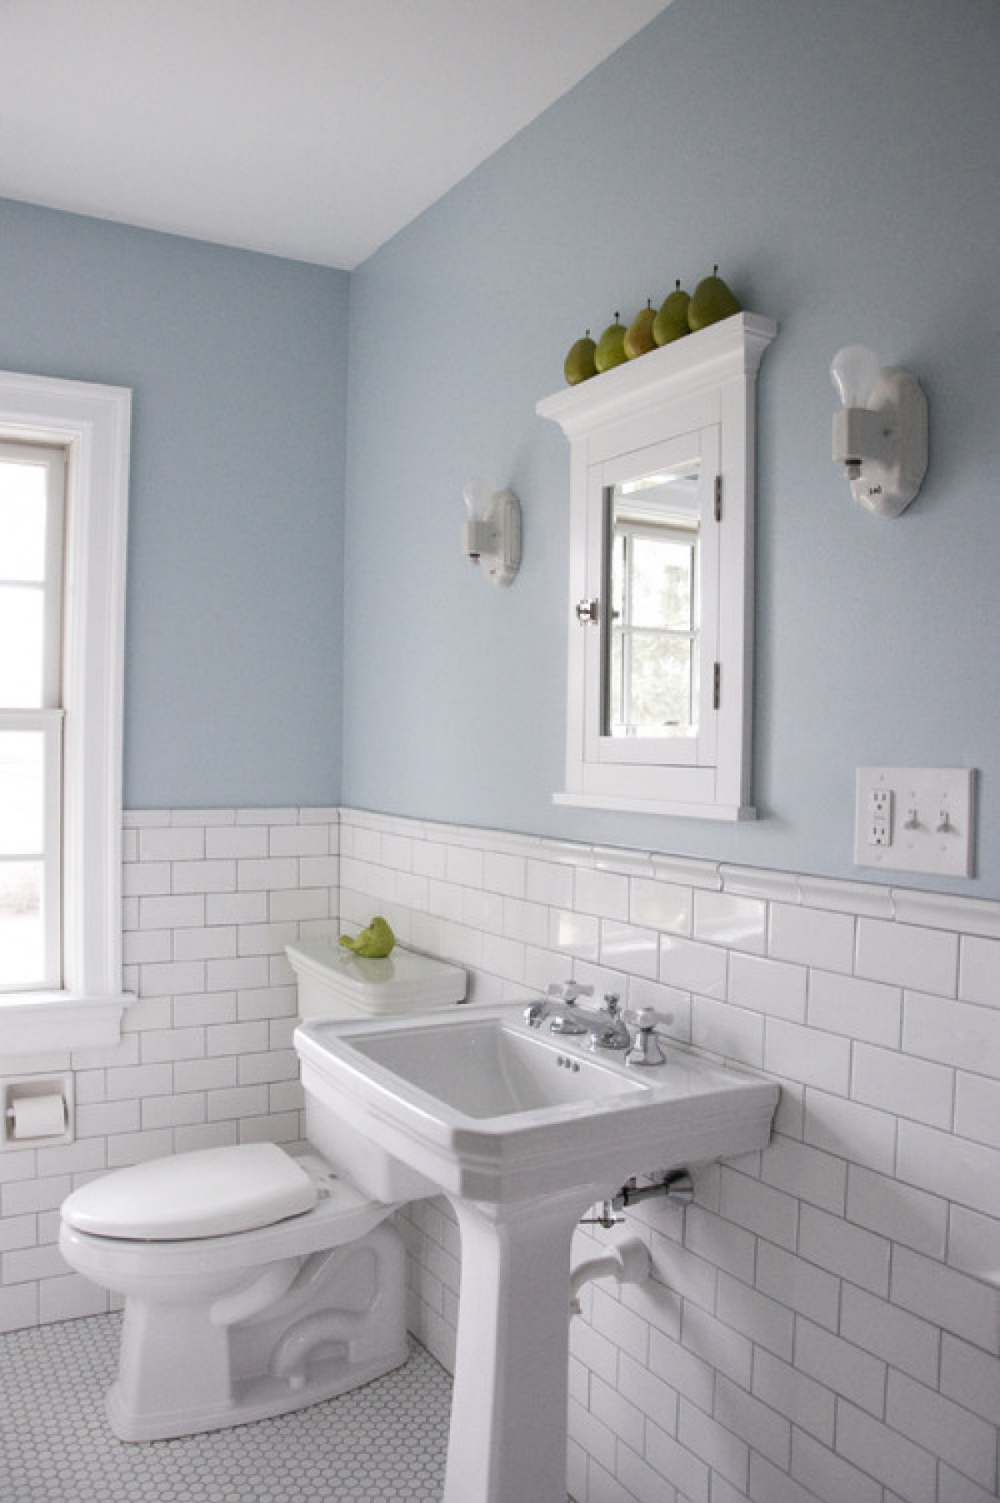 26 Small Bathroom Ideas & Images to Inspire You